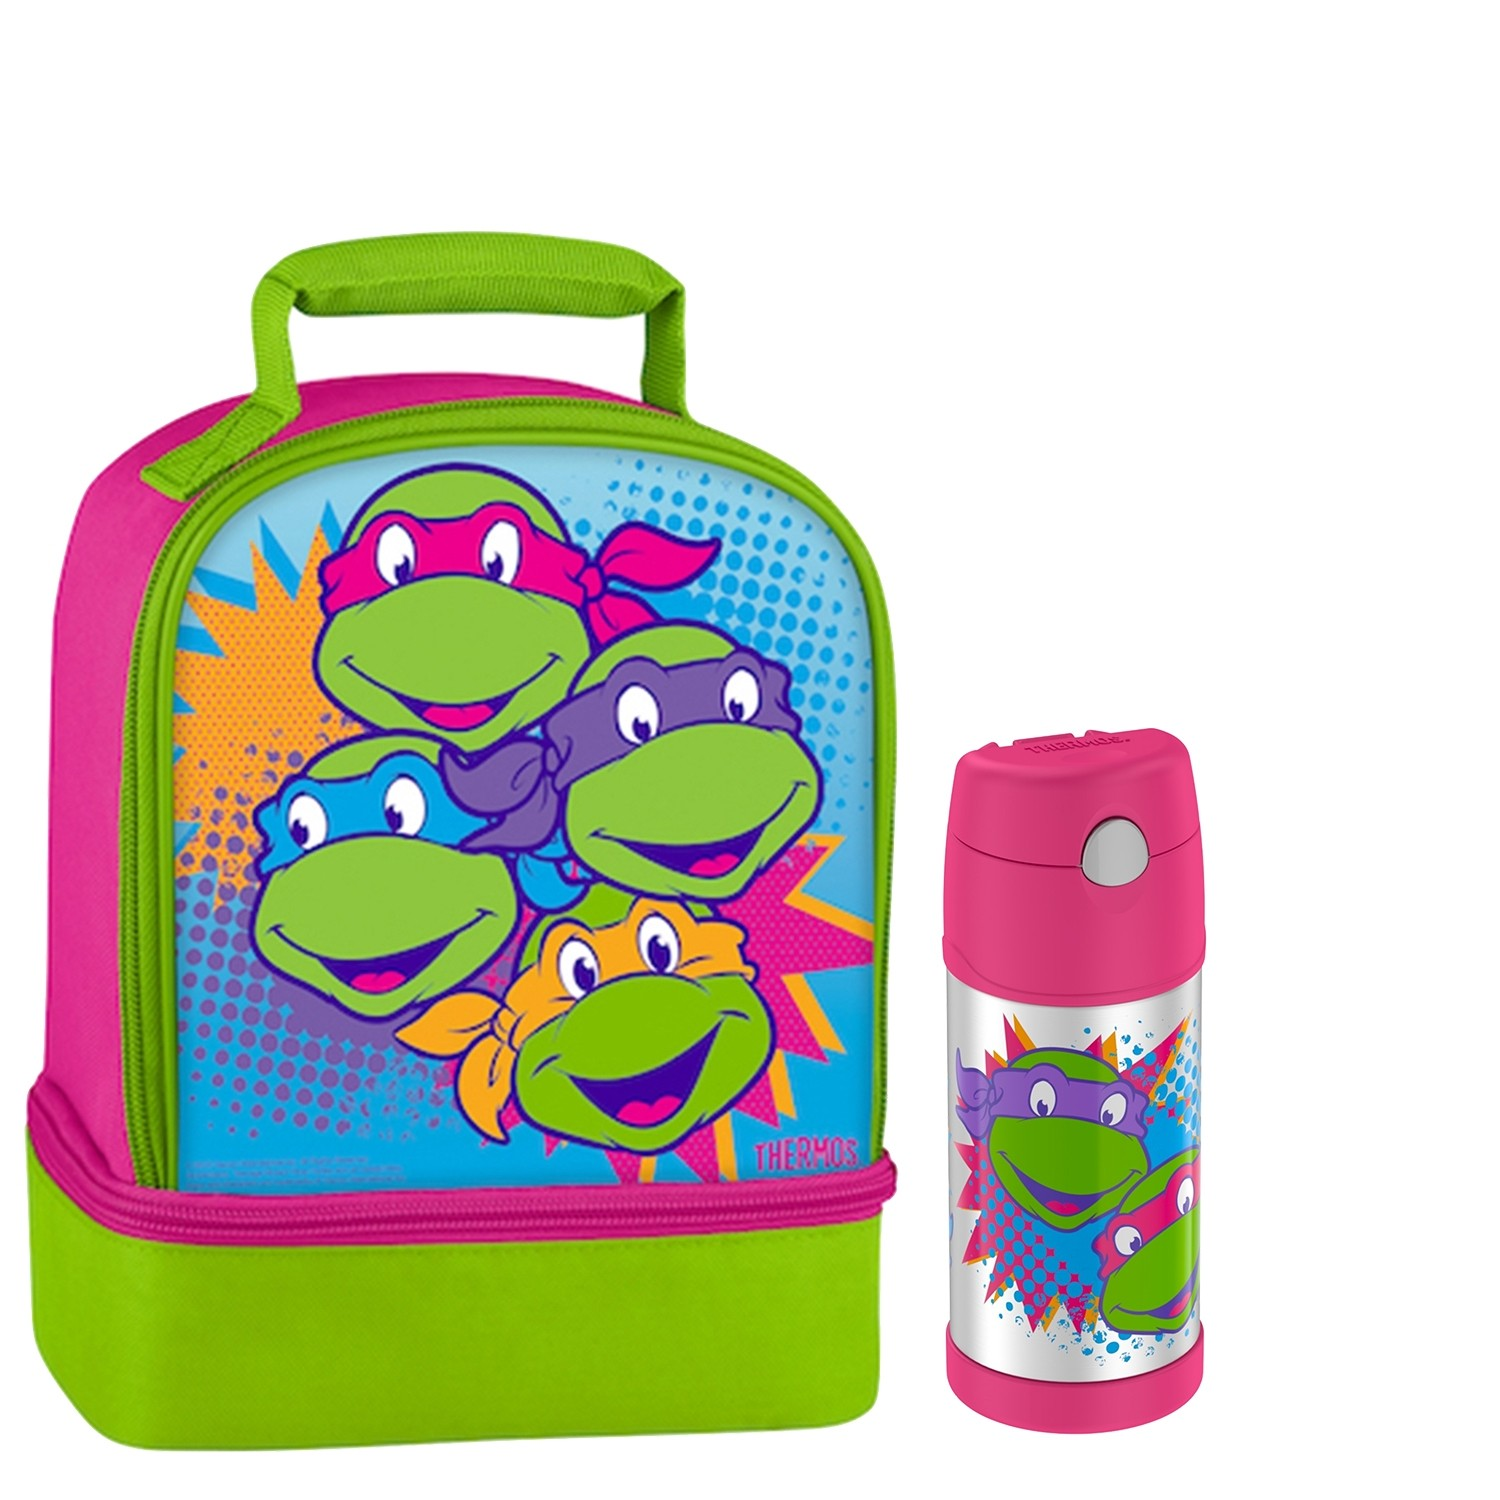 DUAL LUNCH KIT WITH FUNTAINER® BOTTLE 12 OZ, TEENAGE MUTANT NINJA TURTLES